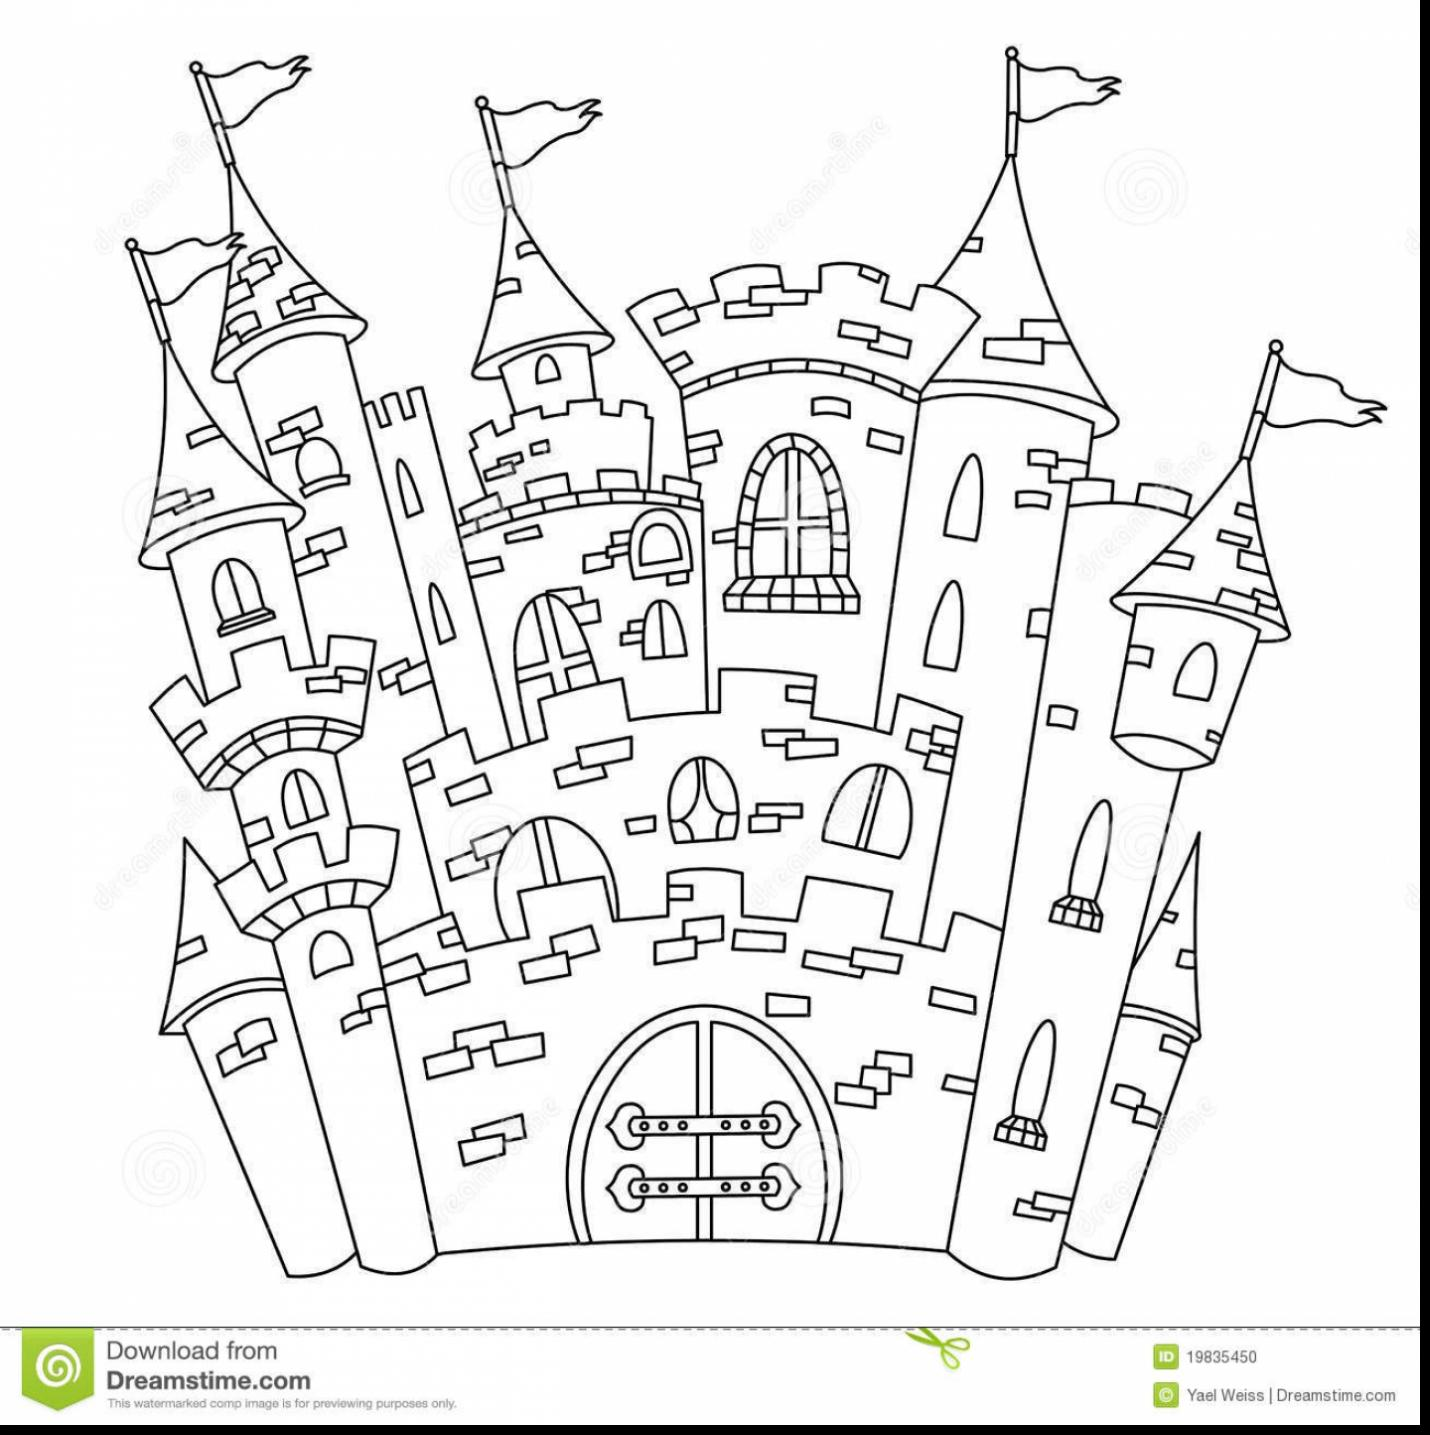 Magnificent Castle clipart #12, Download drawings